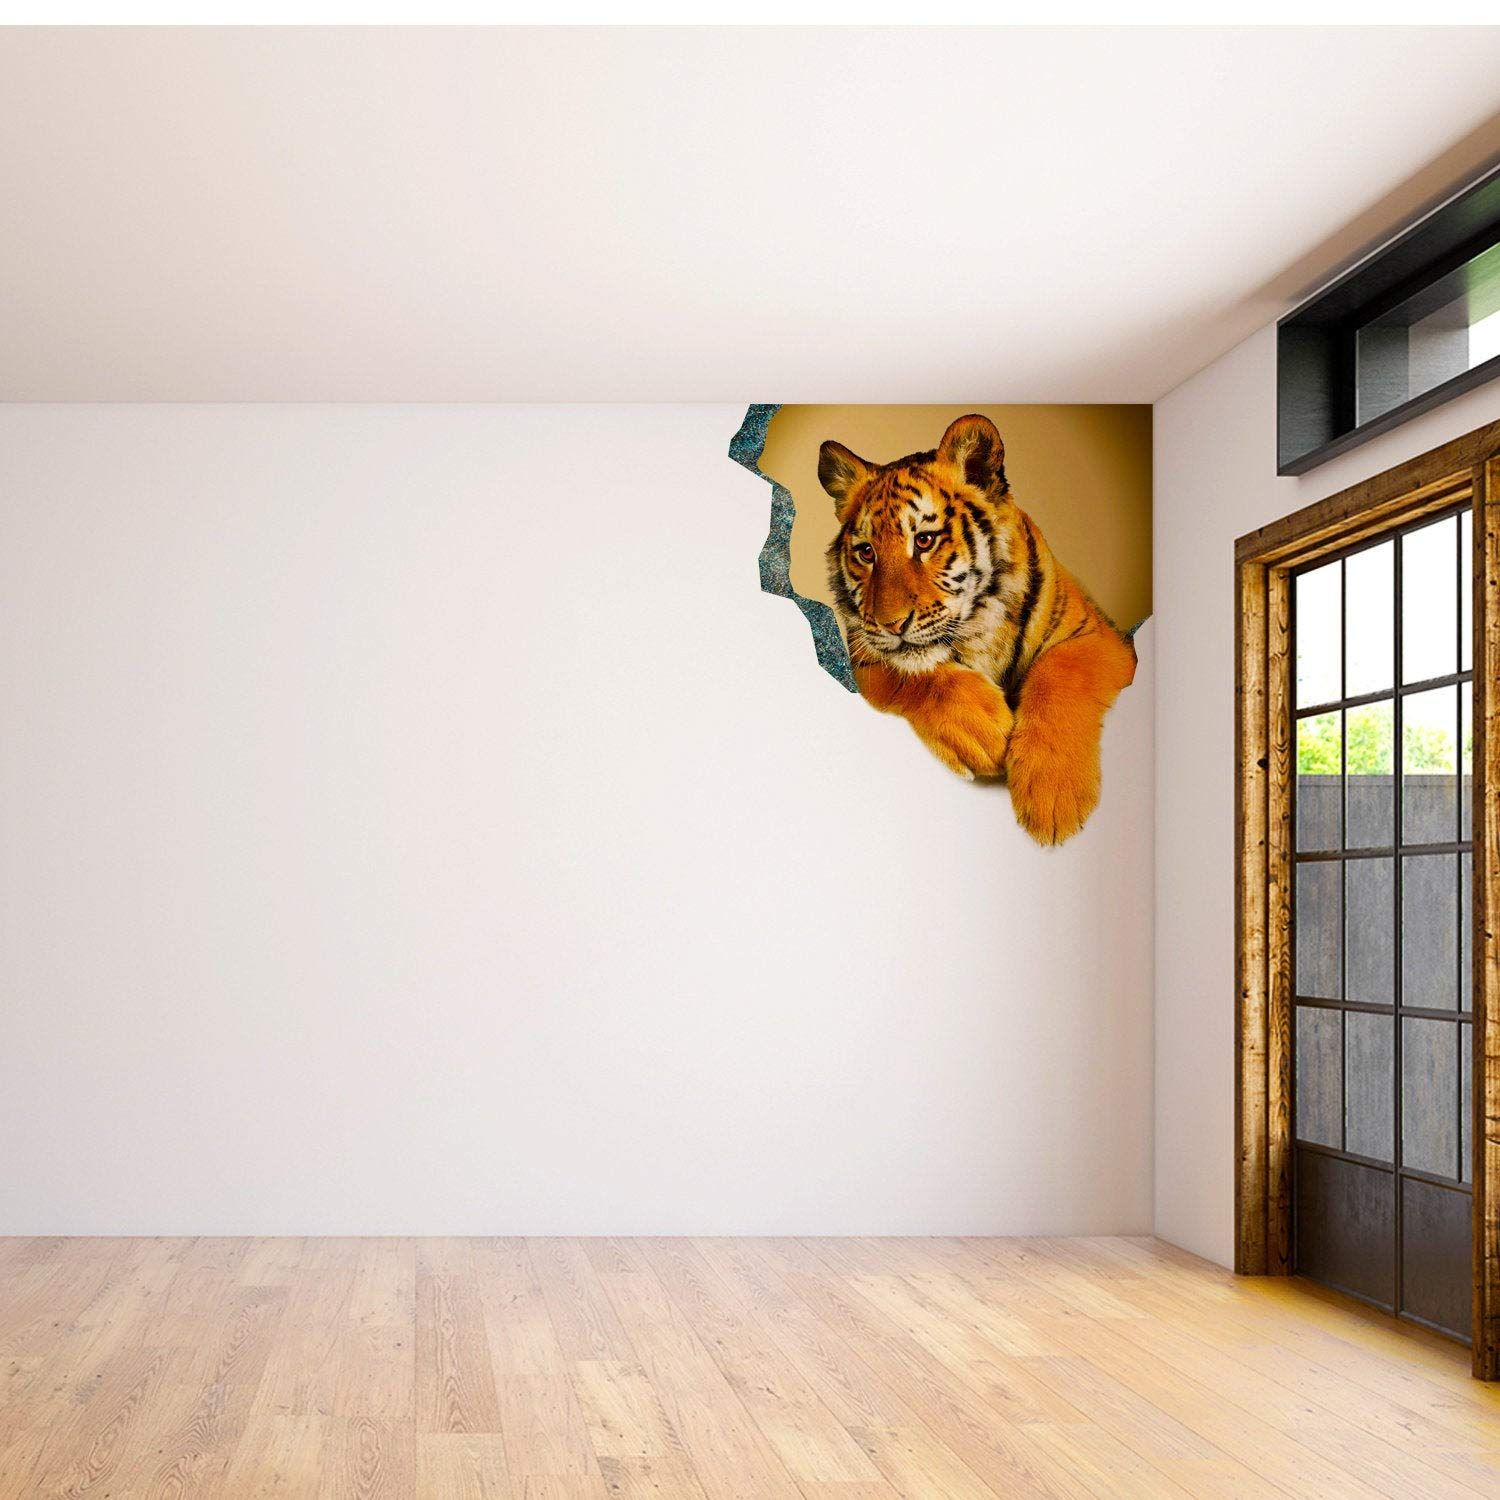 3D Art Animal Hole in Wall Sticker - Vinyl Decor Broken Illusion Peel and Stick Decal - Porthole Crack Print DIY Cracked Printed Mural Tiger